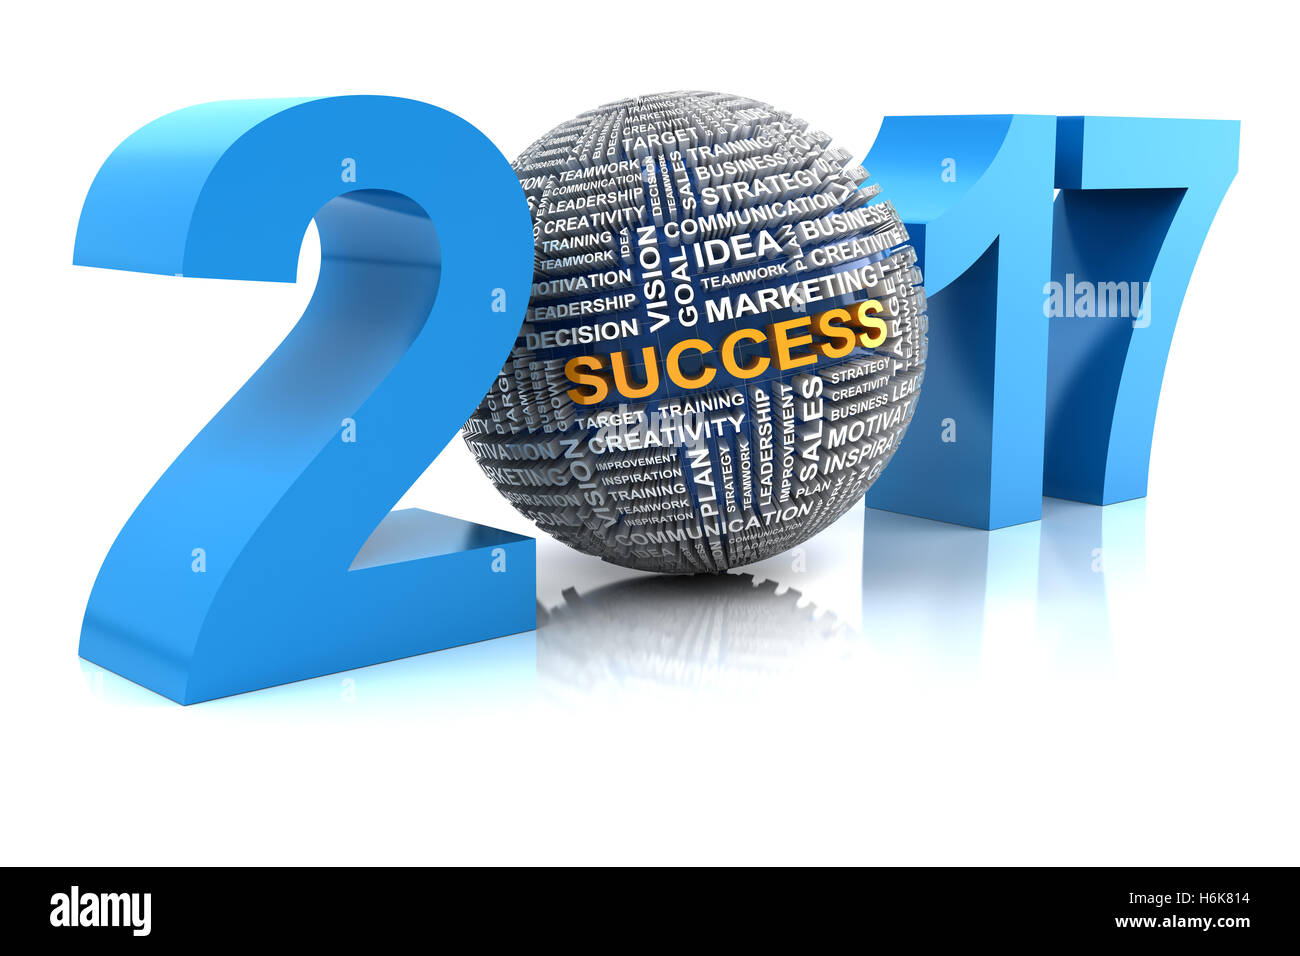 Business success in 2017, 3d render - Stock Image